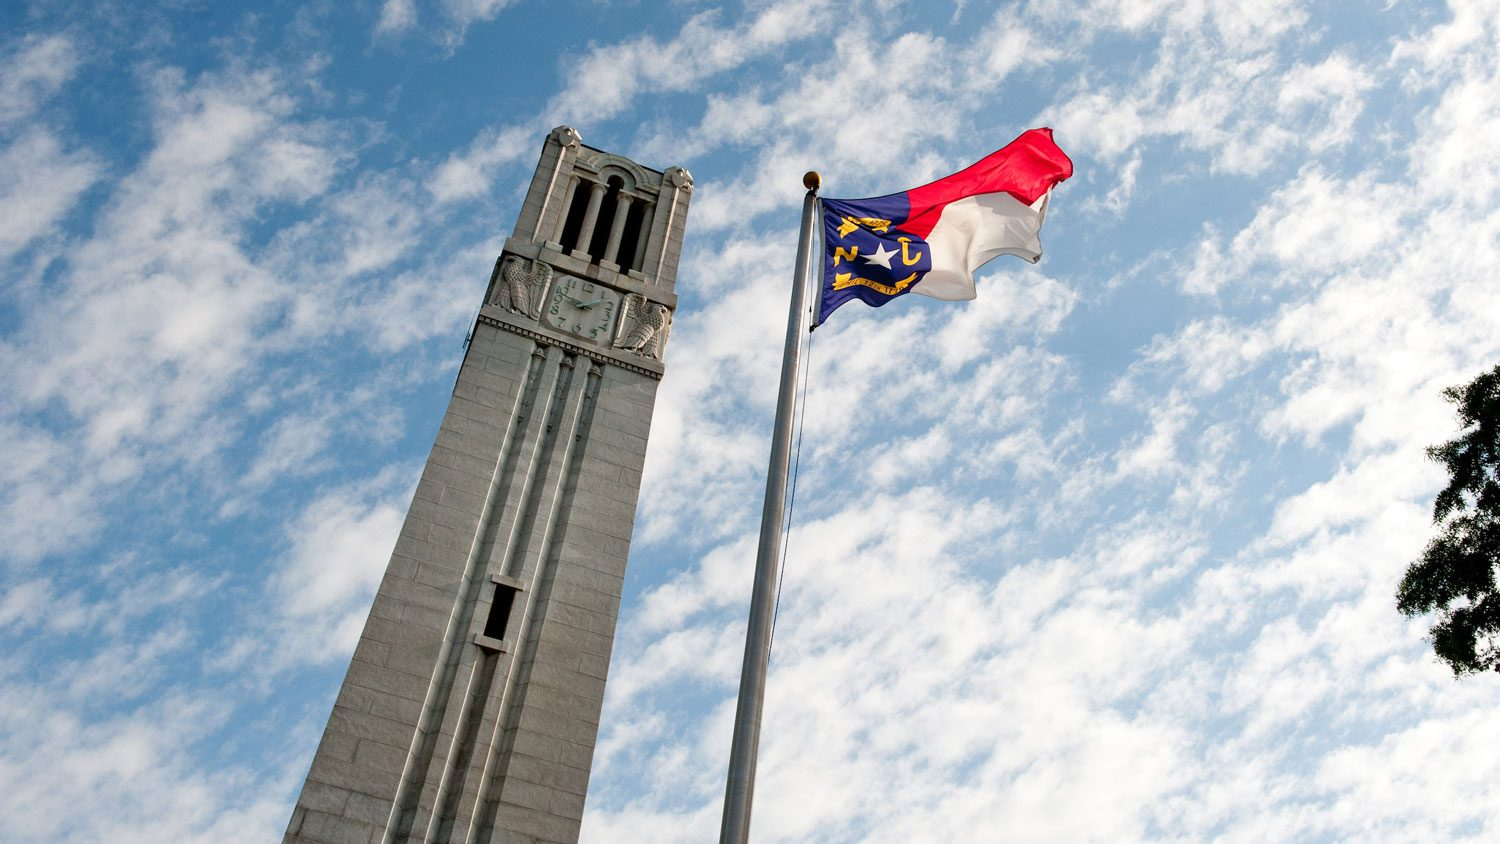 NC State's Belltower